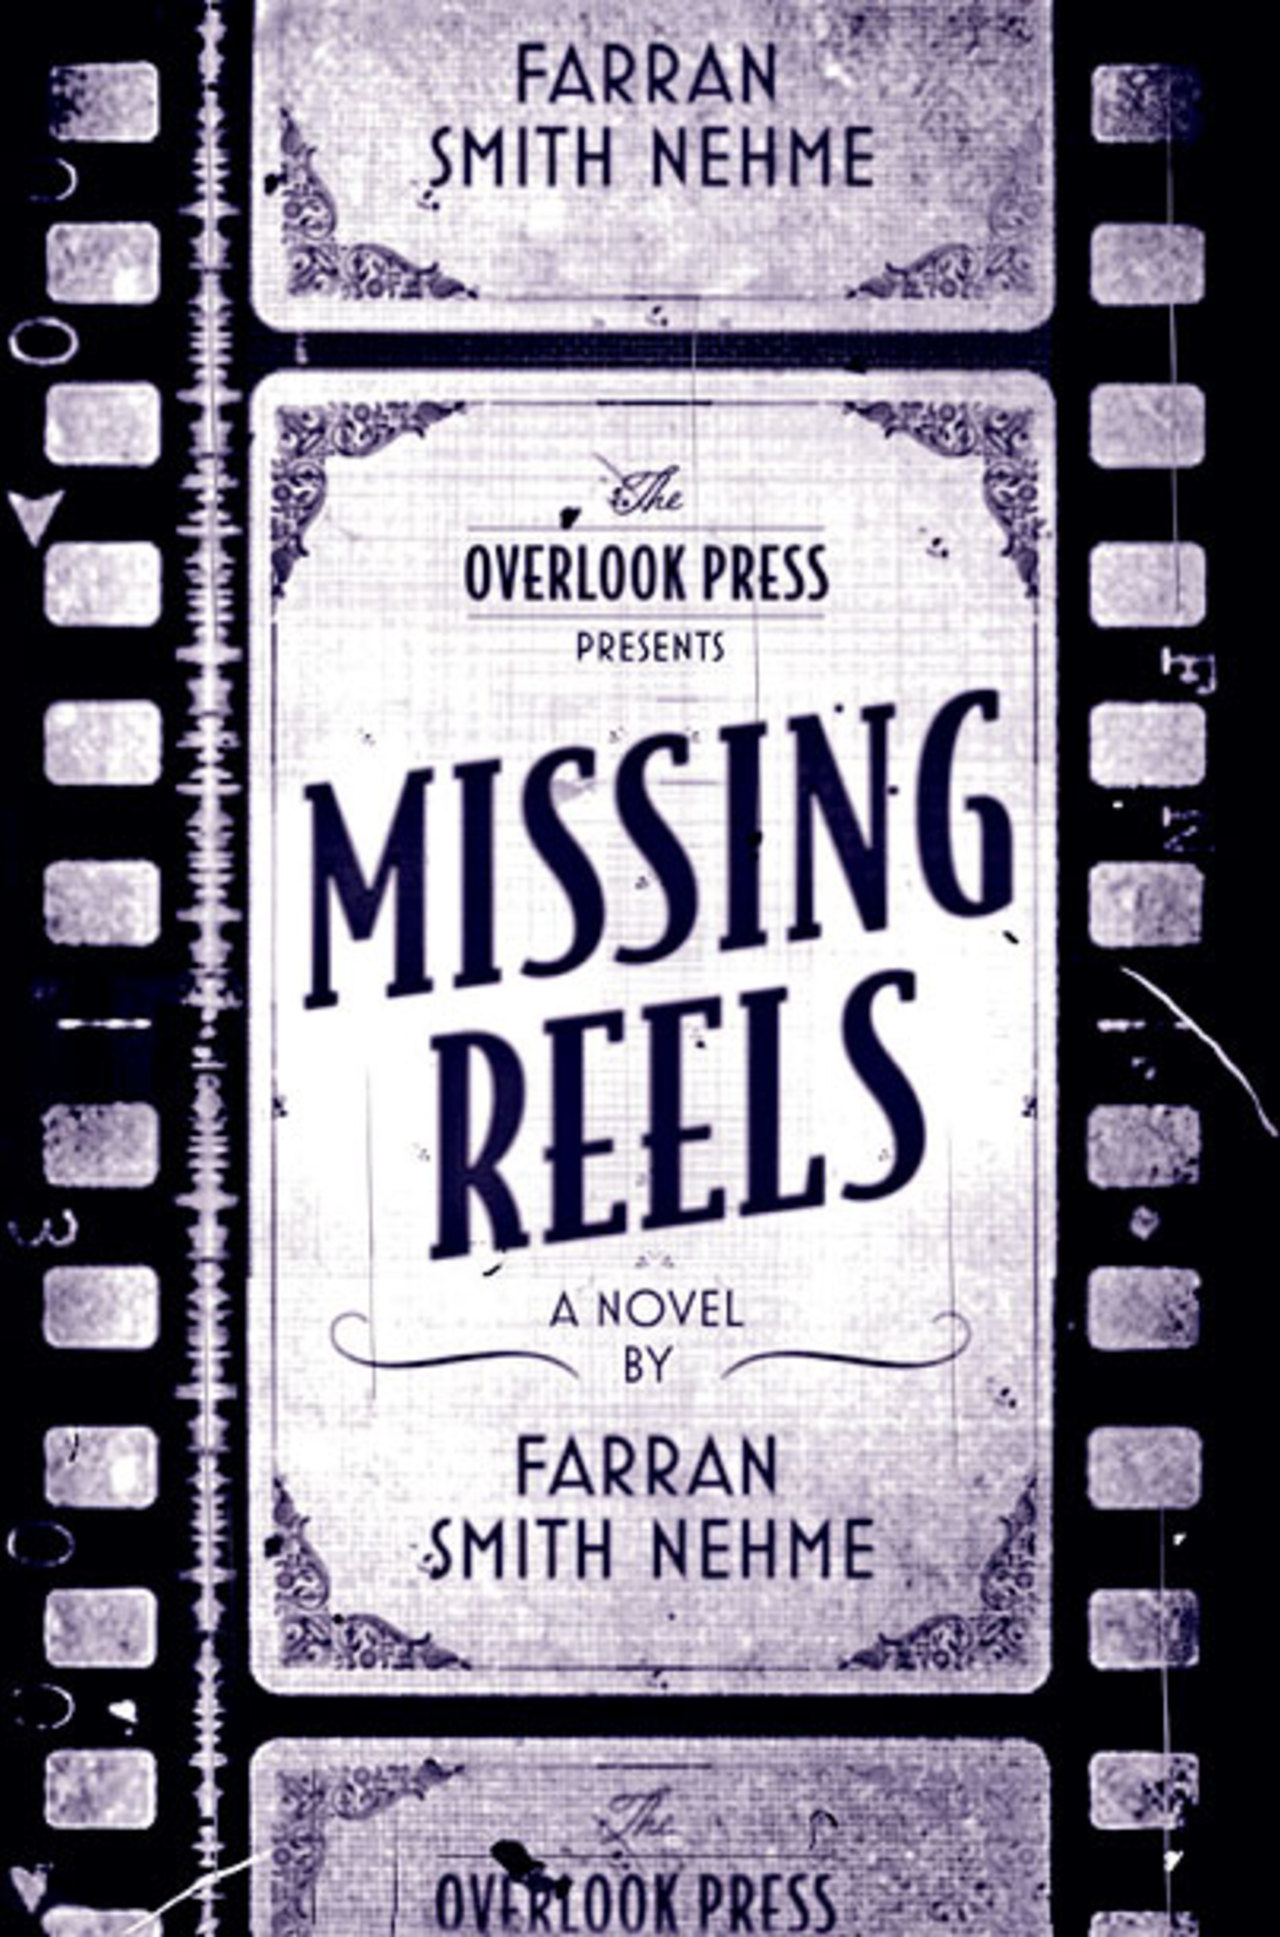 MISSING REELS, by Farran Smith Nehme